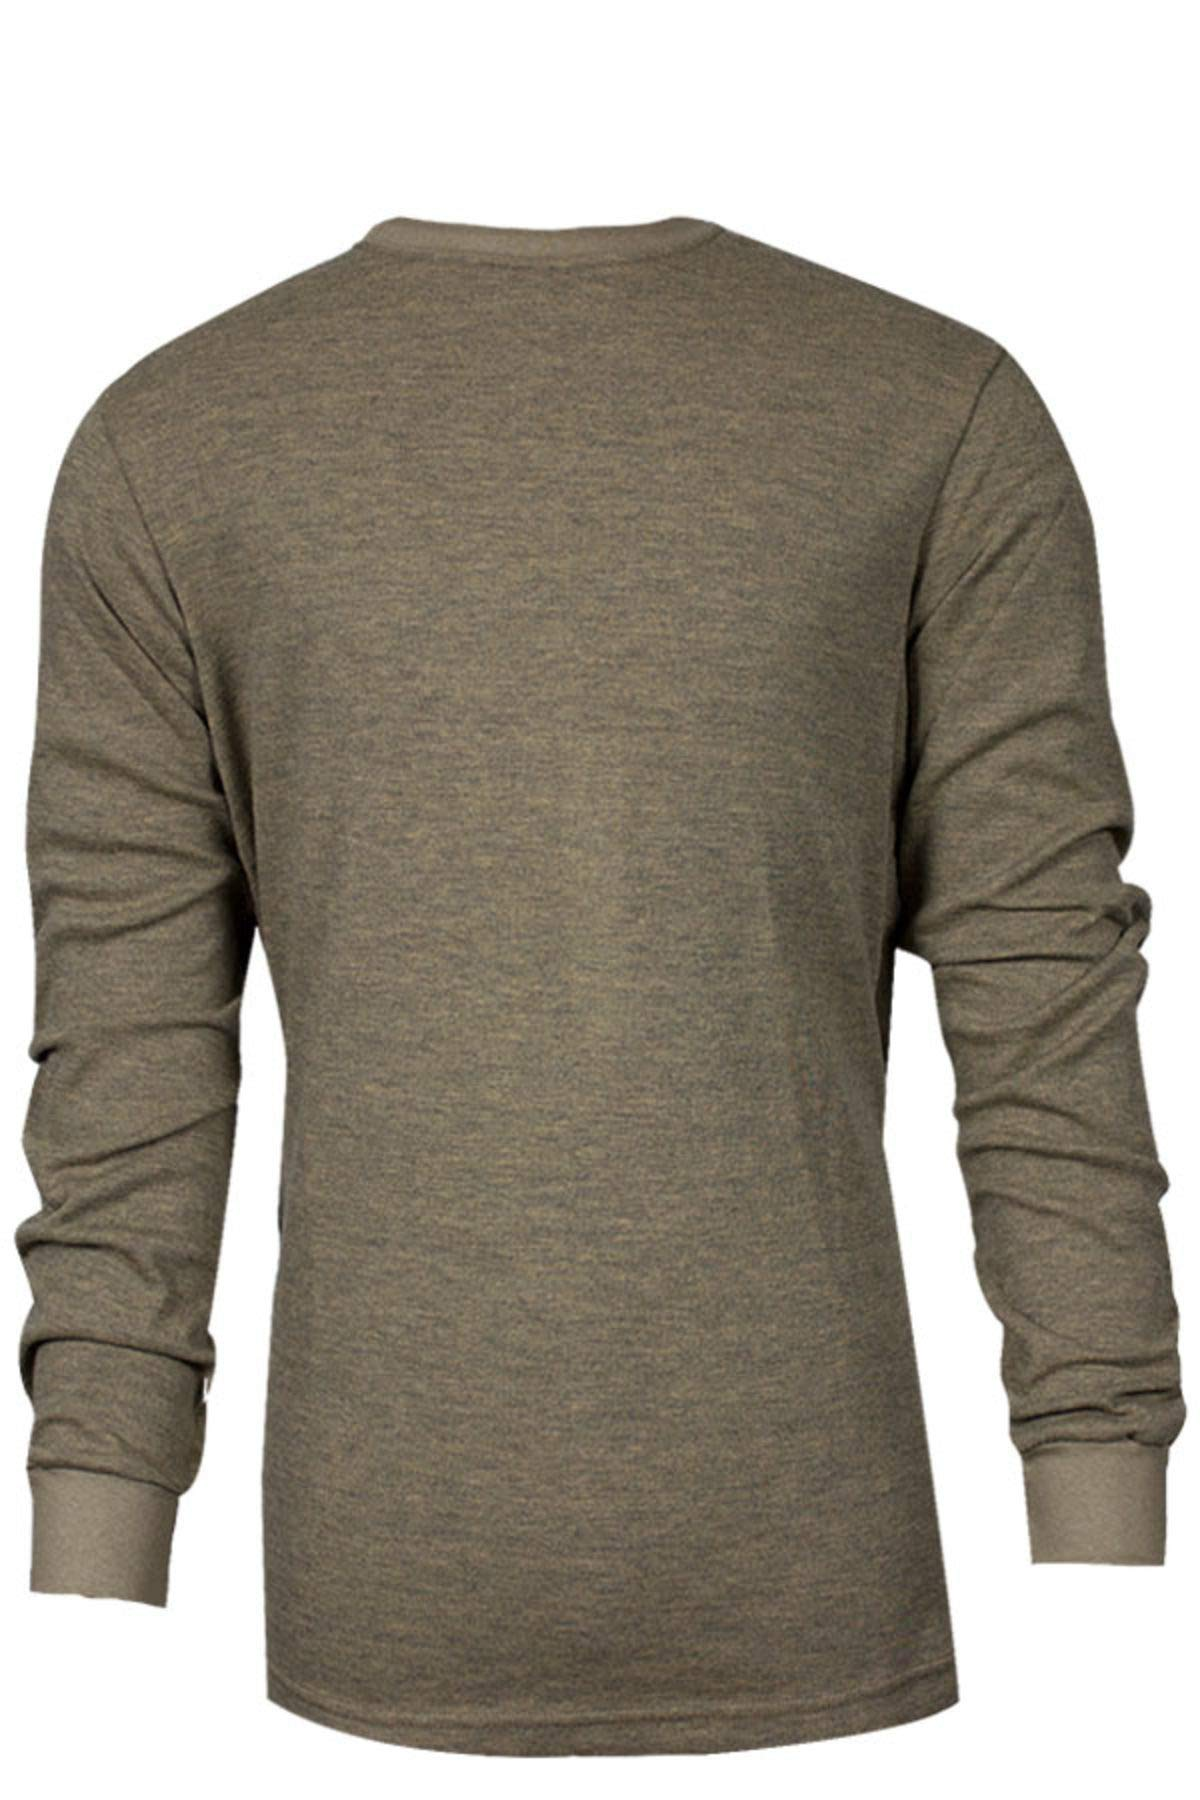 National Safety Apparel C541NTNLSLG TECGEN Select Long Sleeve FR T-Shirt, Large, Tan